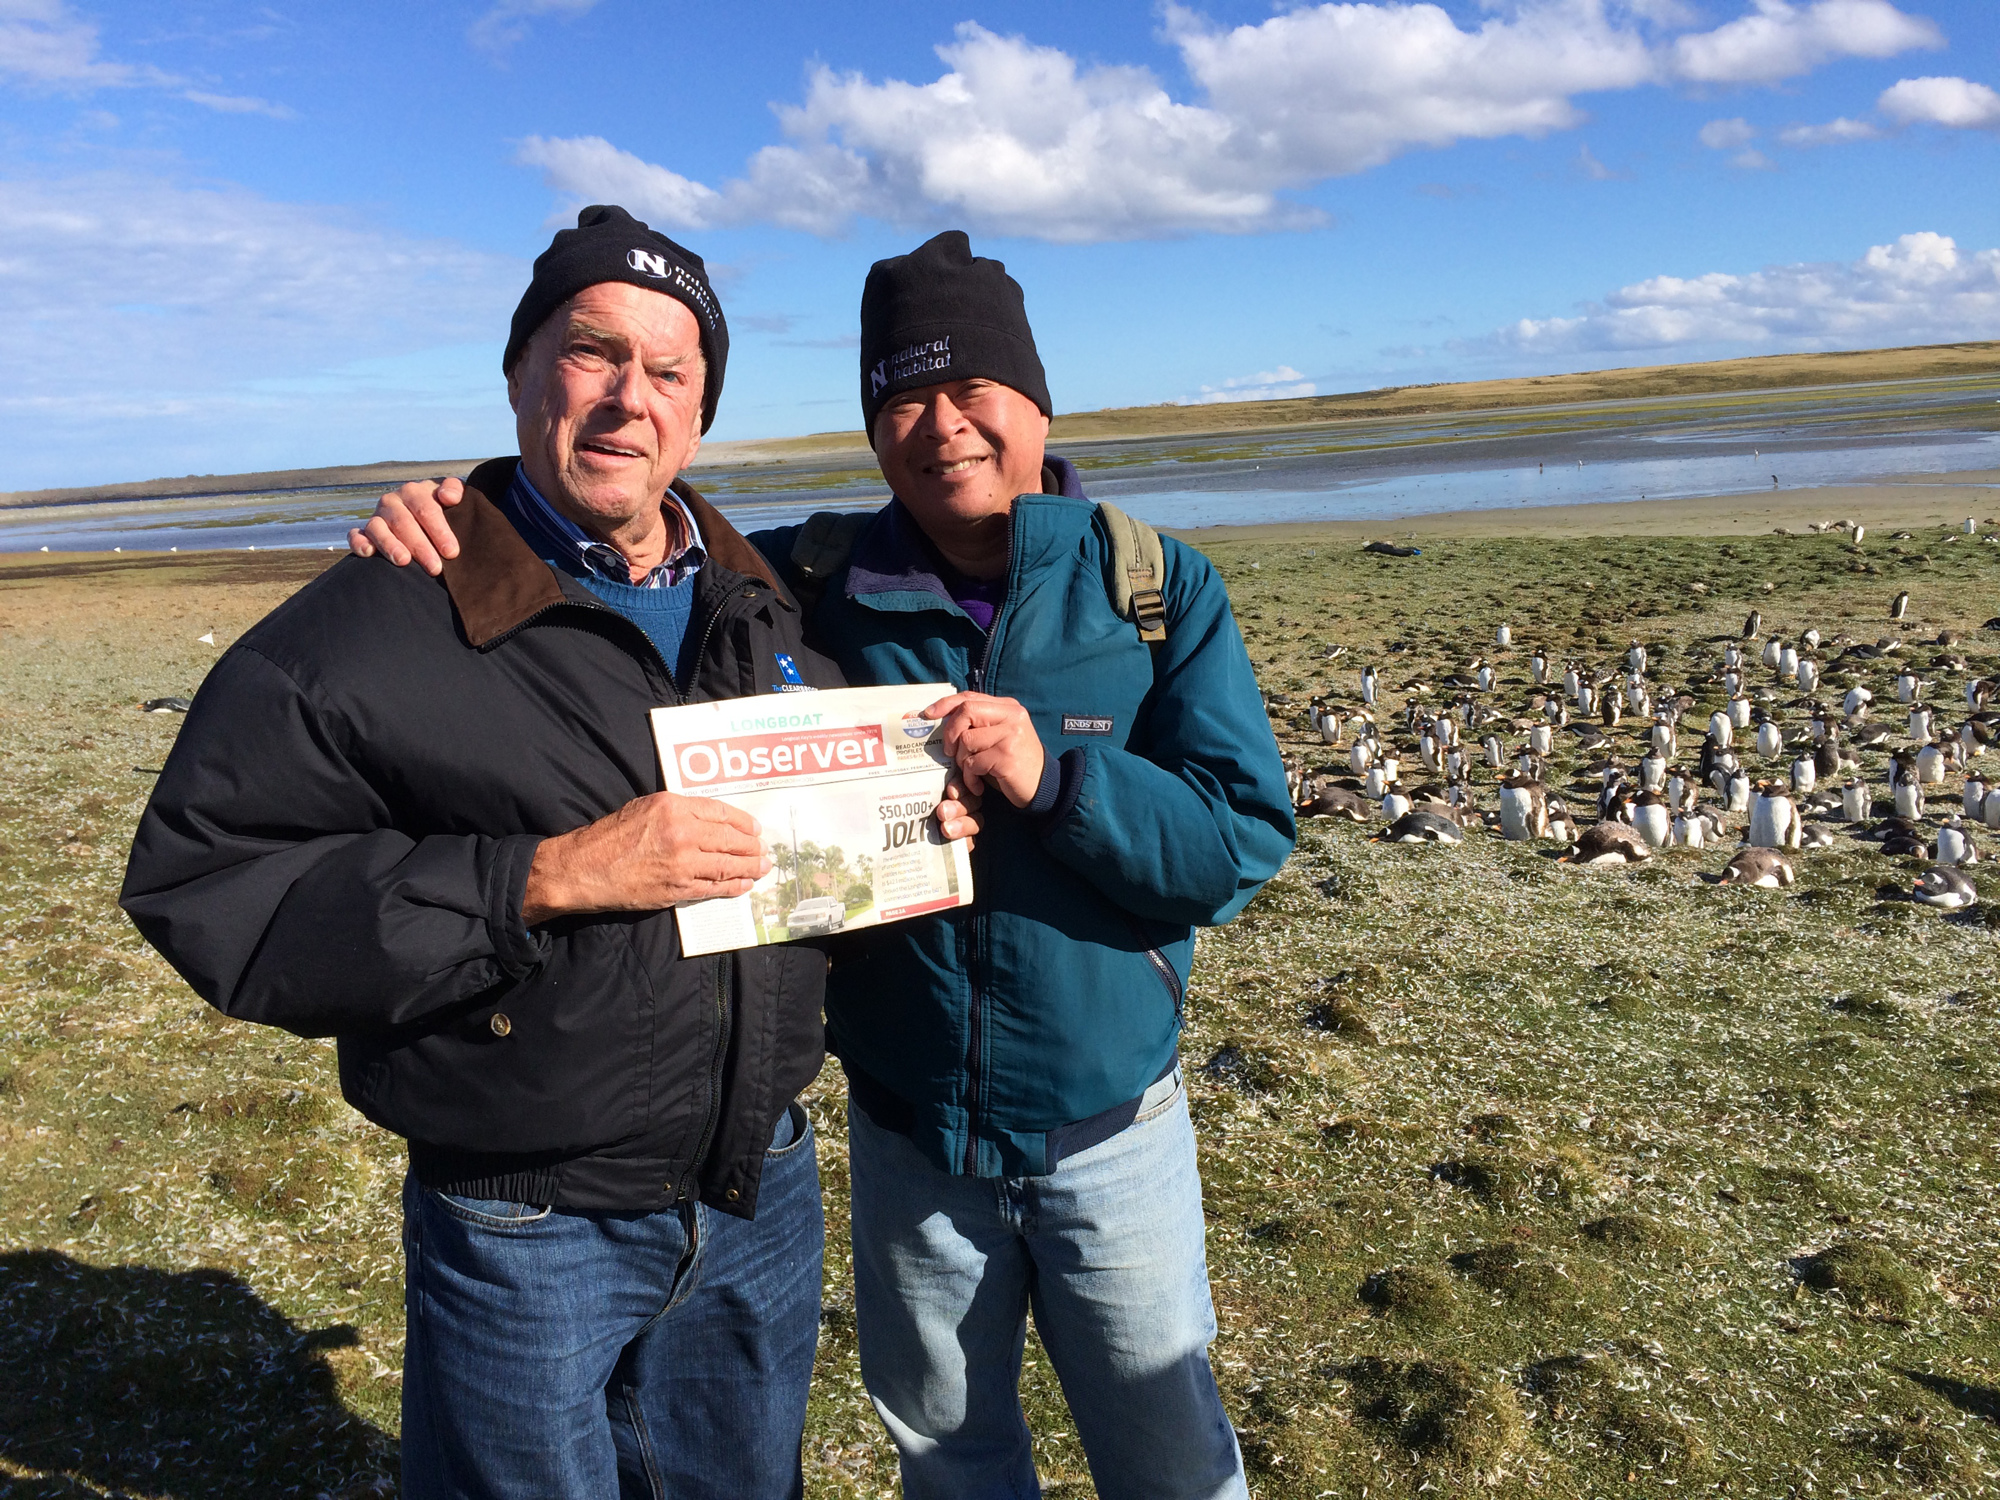 Marvin Kocian and Dean Congbalay visited hundreds of penguins at the Falkland Islands. During the Longboat residents' cruise from Santiago to Buenos Aires, they rounded Cape Horn and took in a tango show.